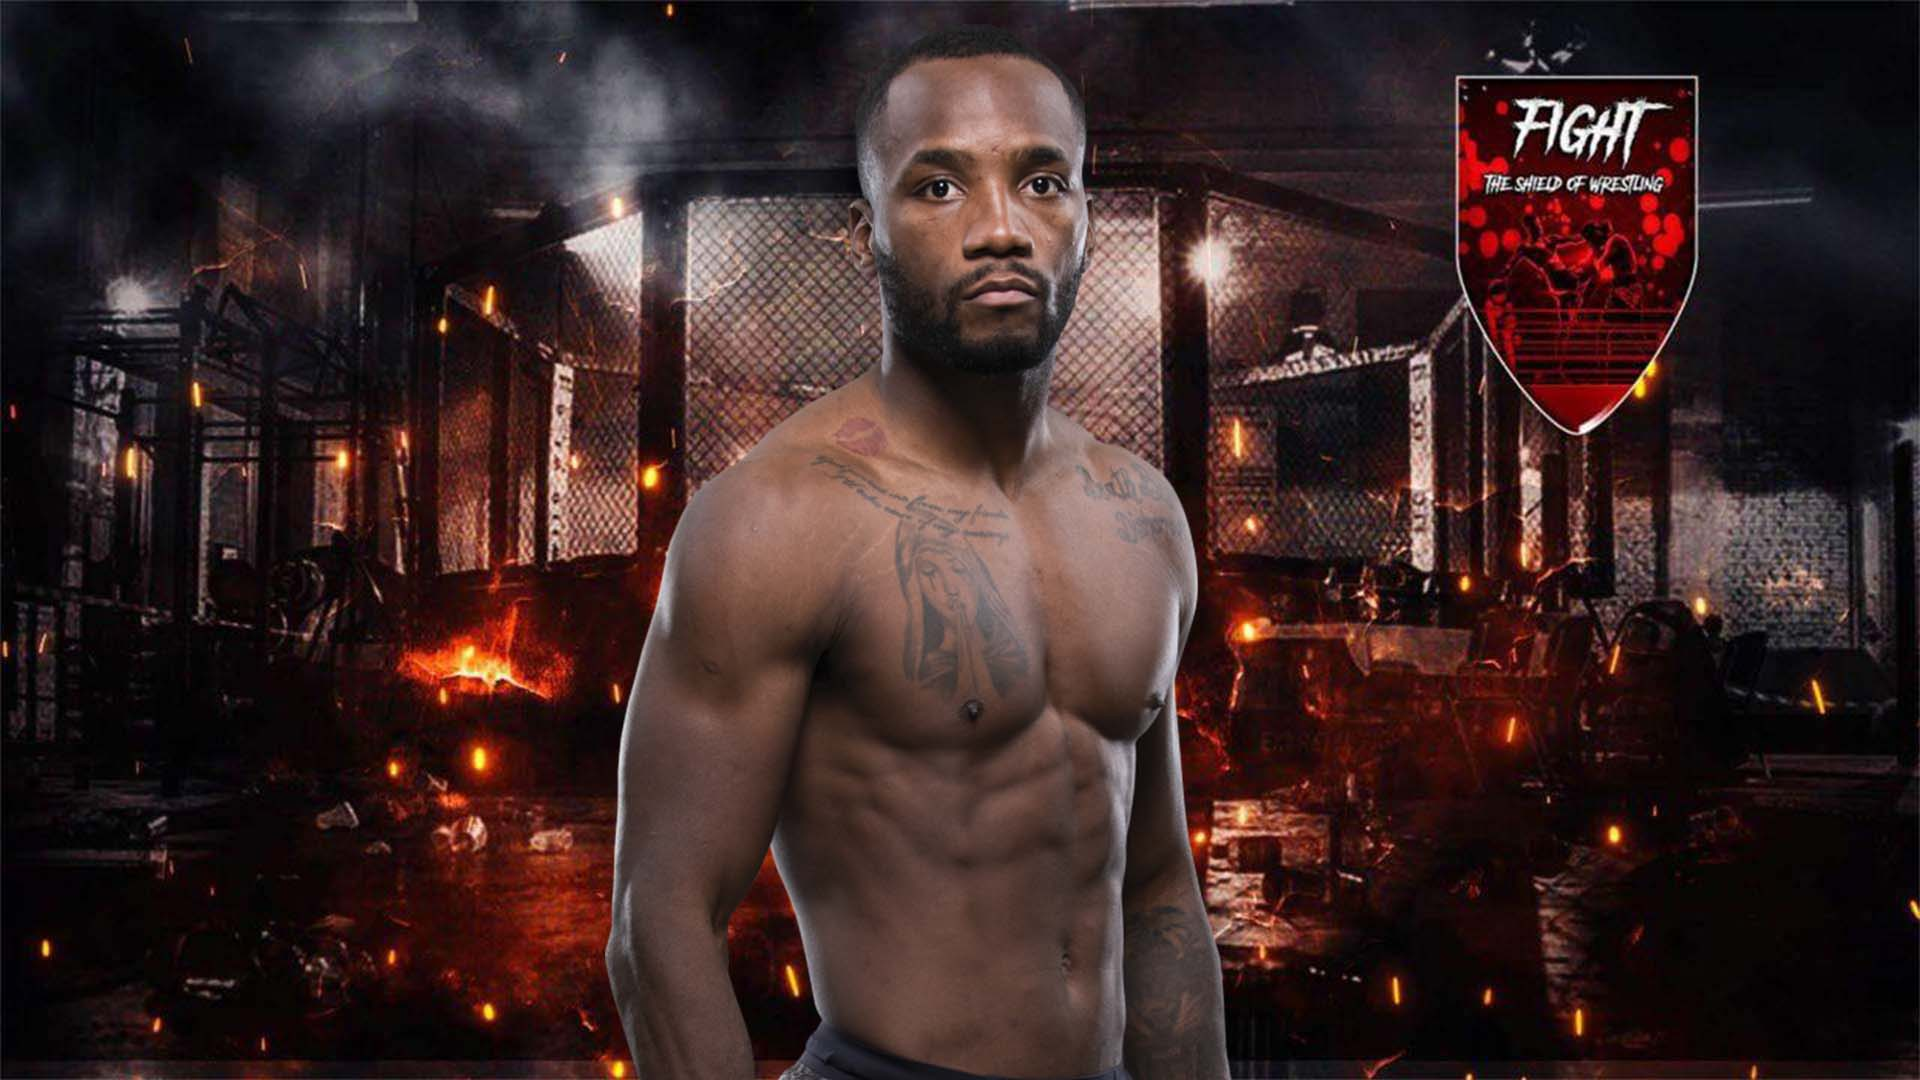 Leon Edwards otterrà la title shot con una vittoria a UFC Fight Night 187